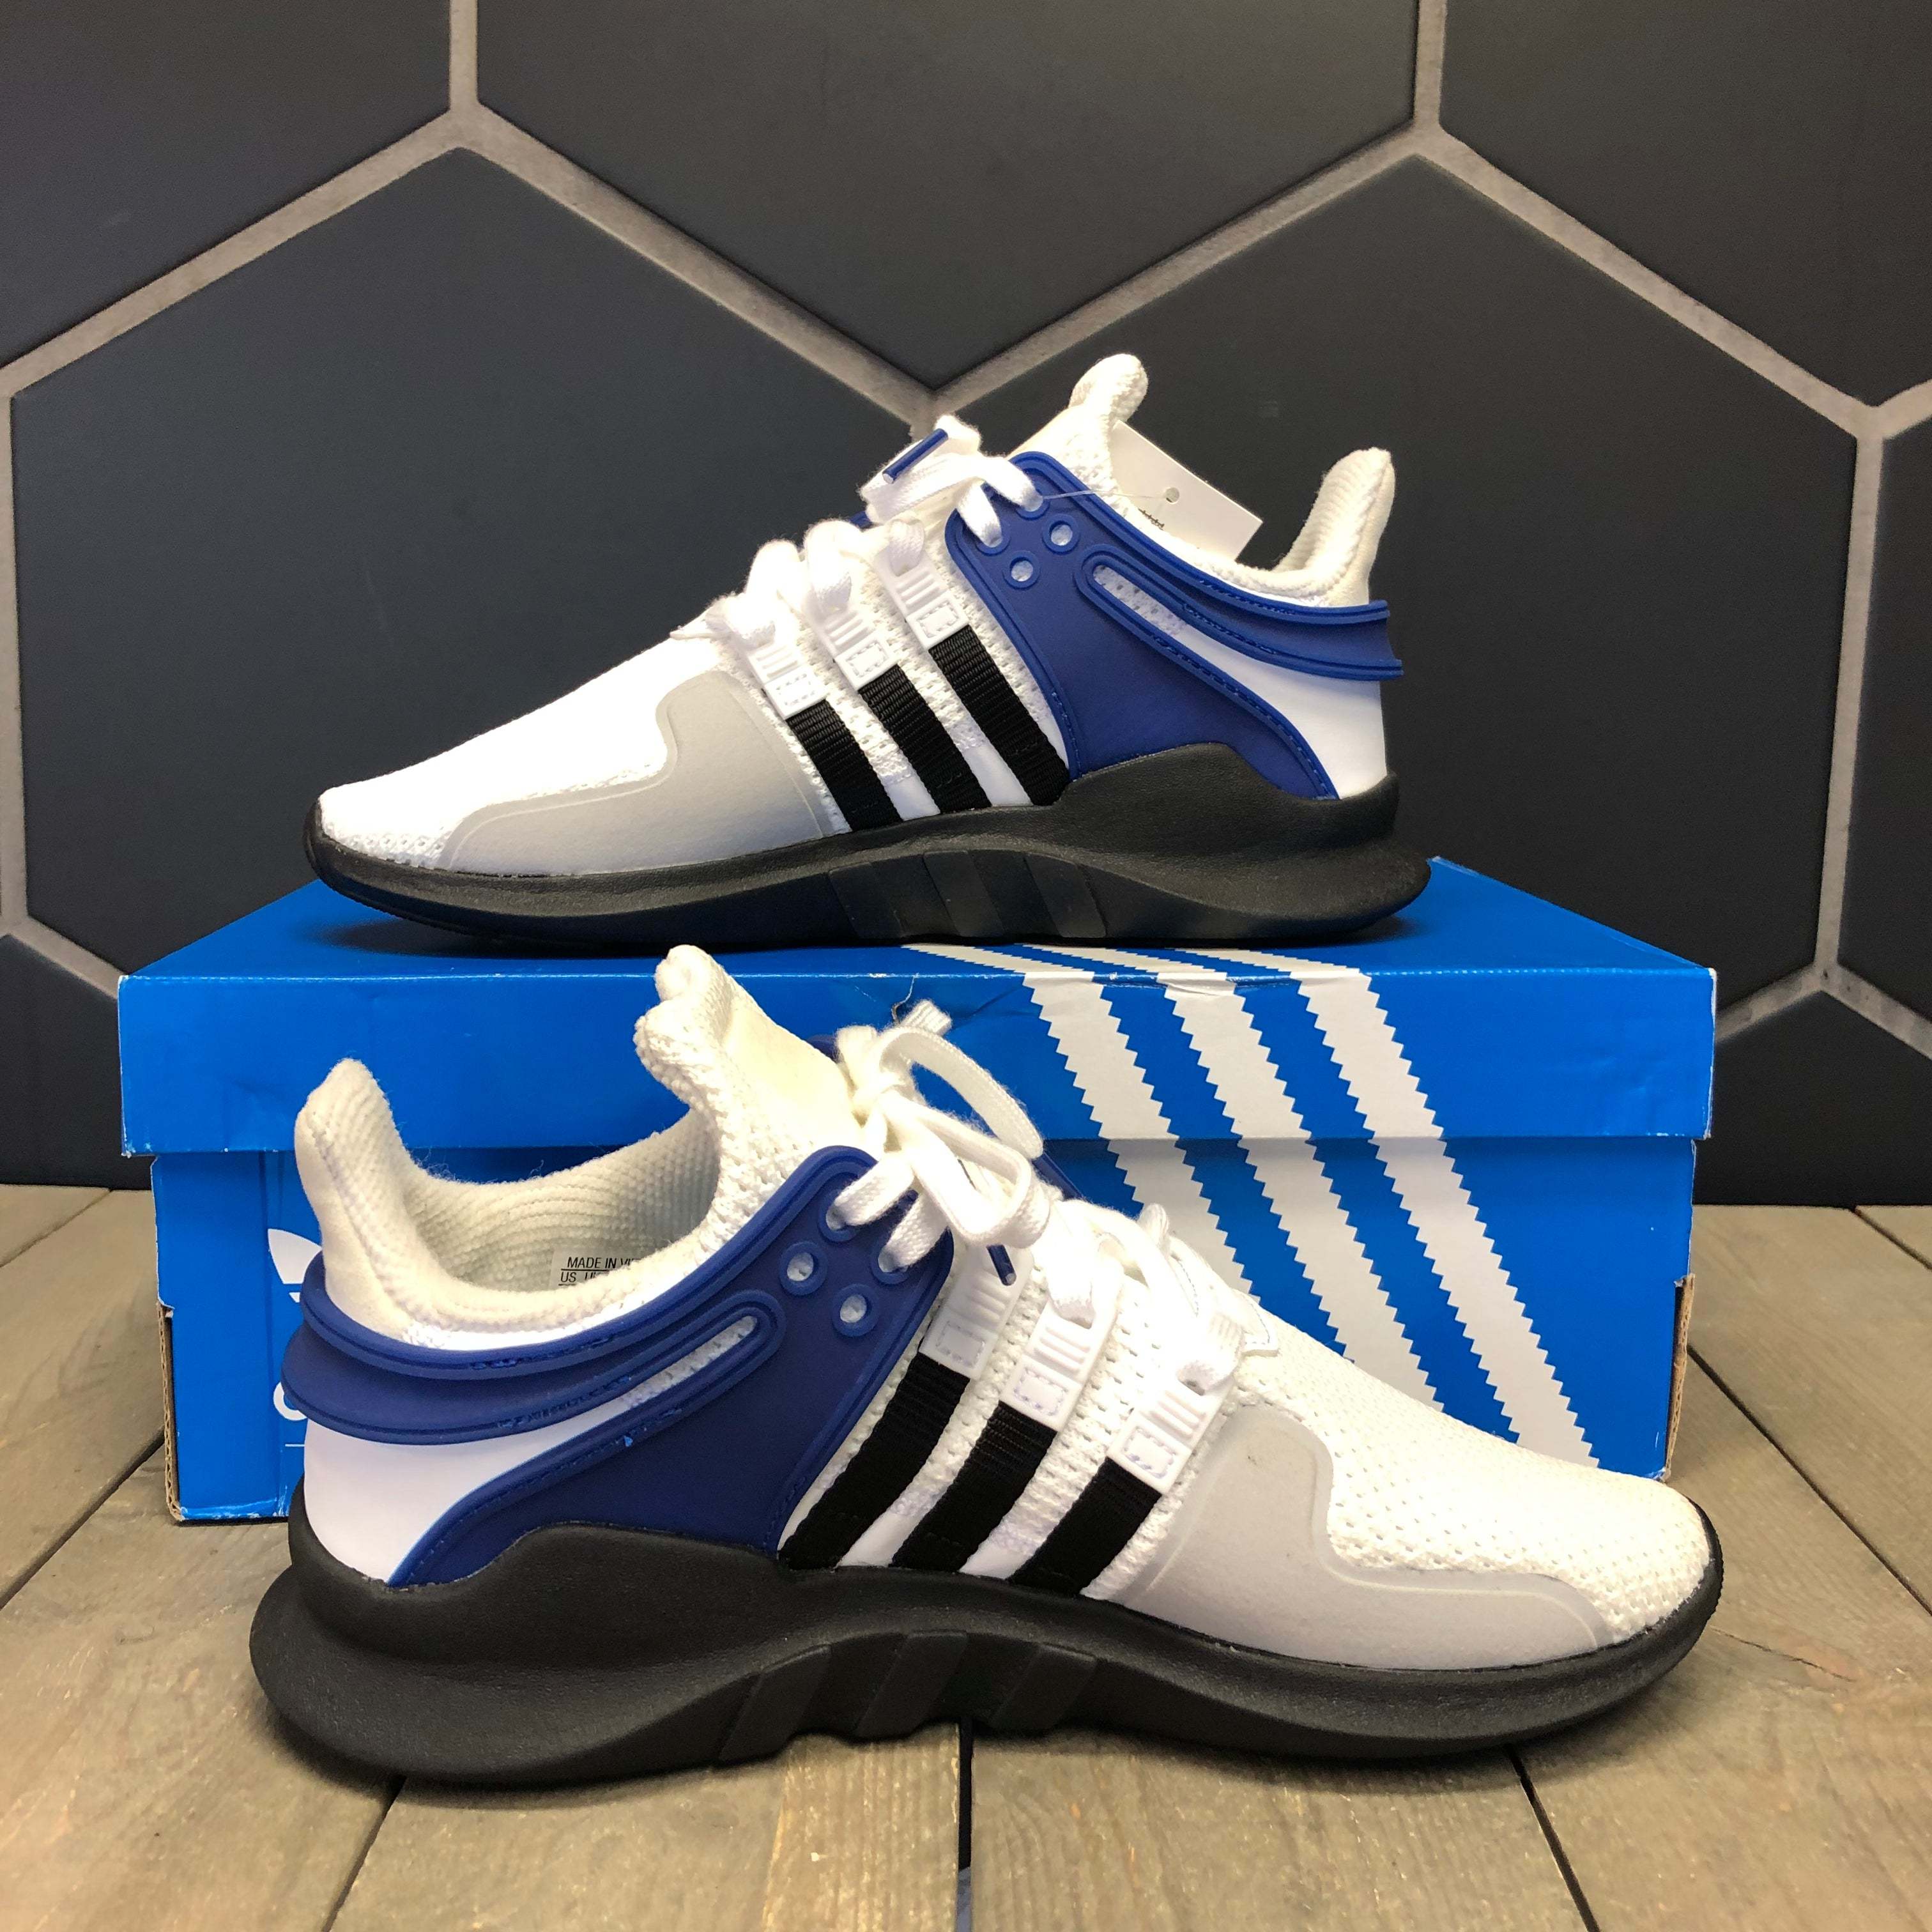 New W/ Box! Adidas EQT Support ADV J GS White Royal Size 5